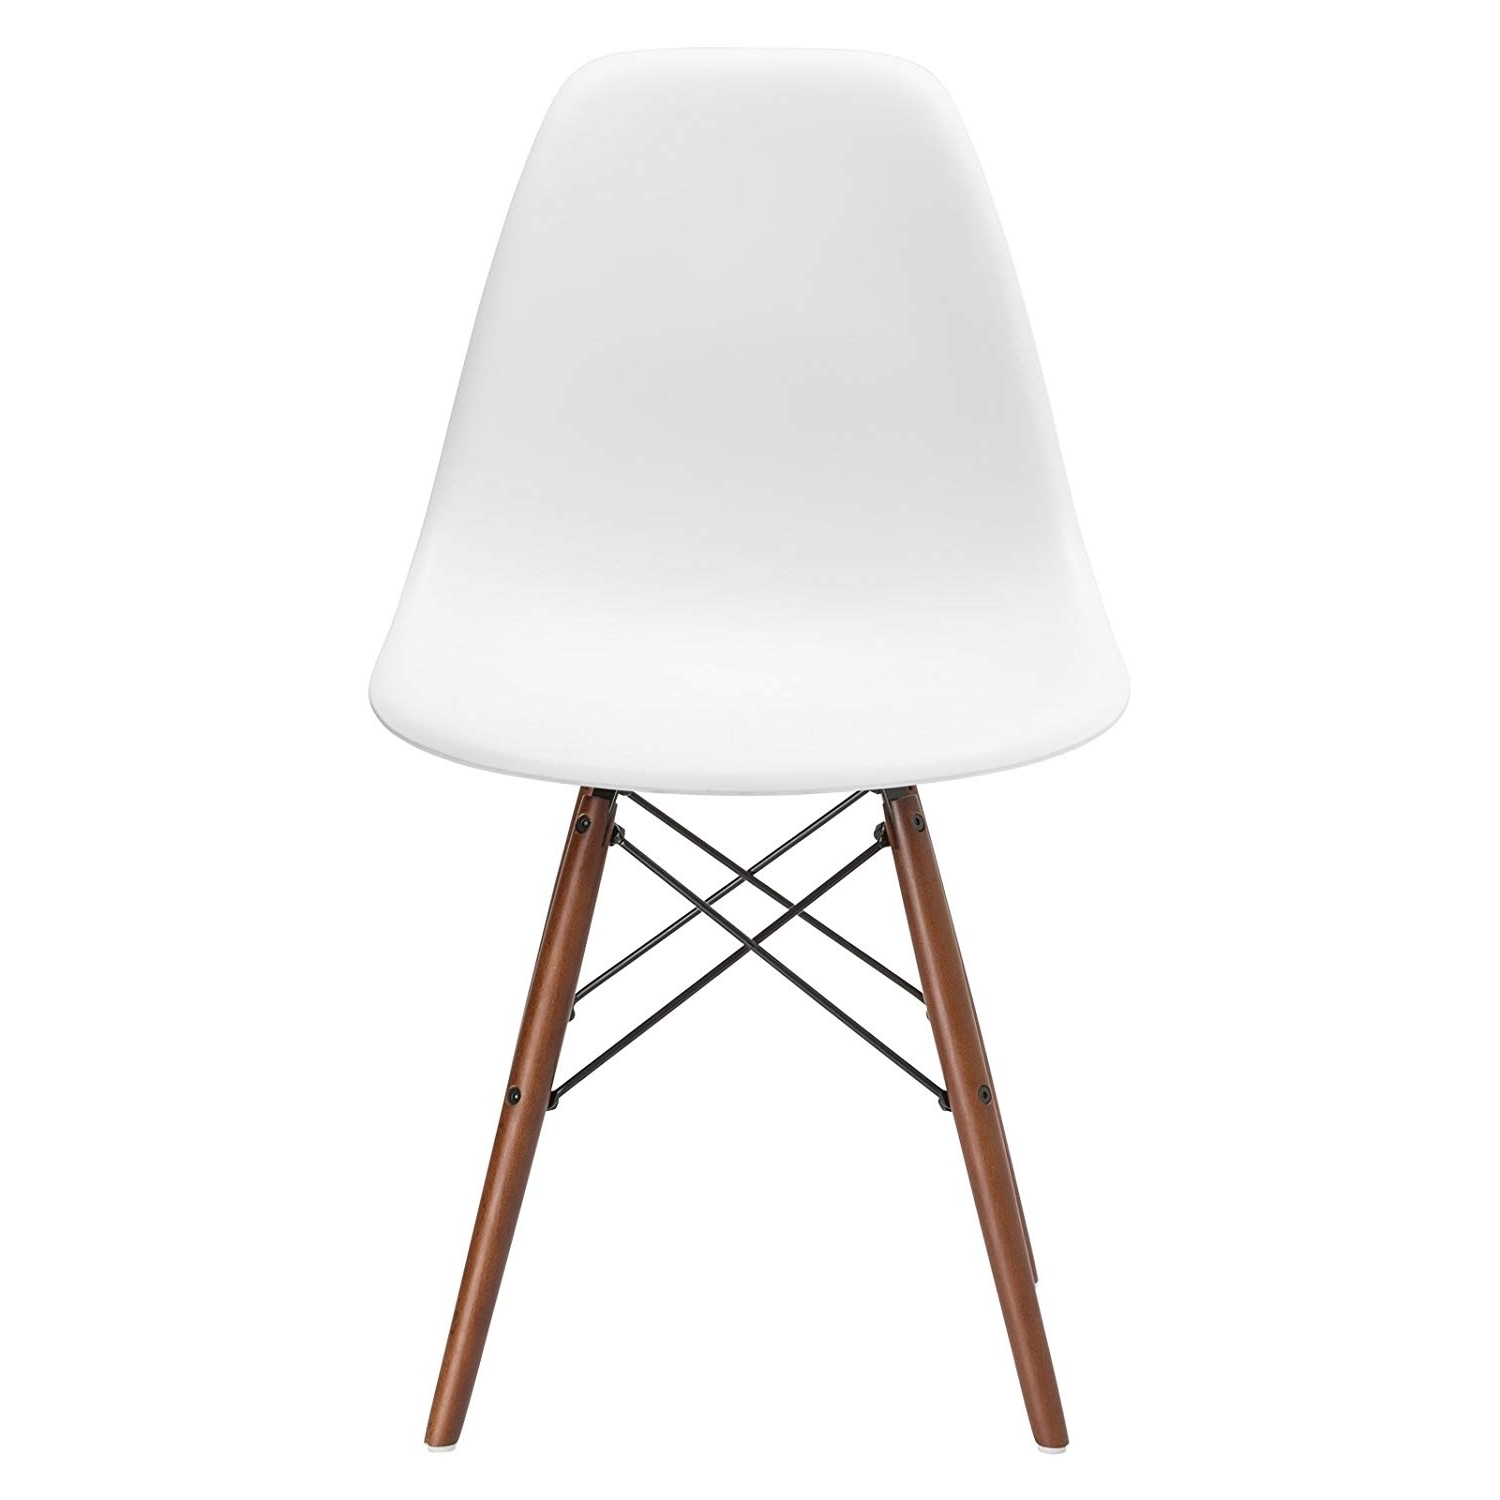 Widely Used Alexa White Side Chairs Within Amazon – Poly And Bark Vortex Side Chair With Walnut Legs In (View 9 of 20)